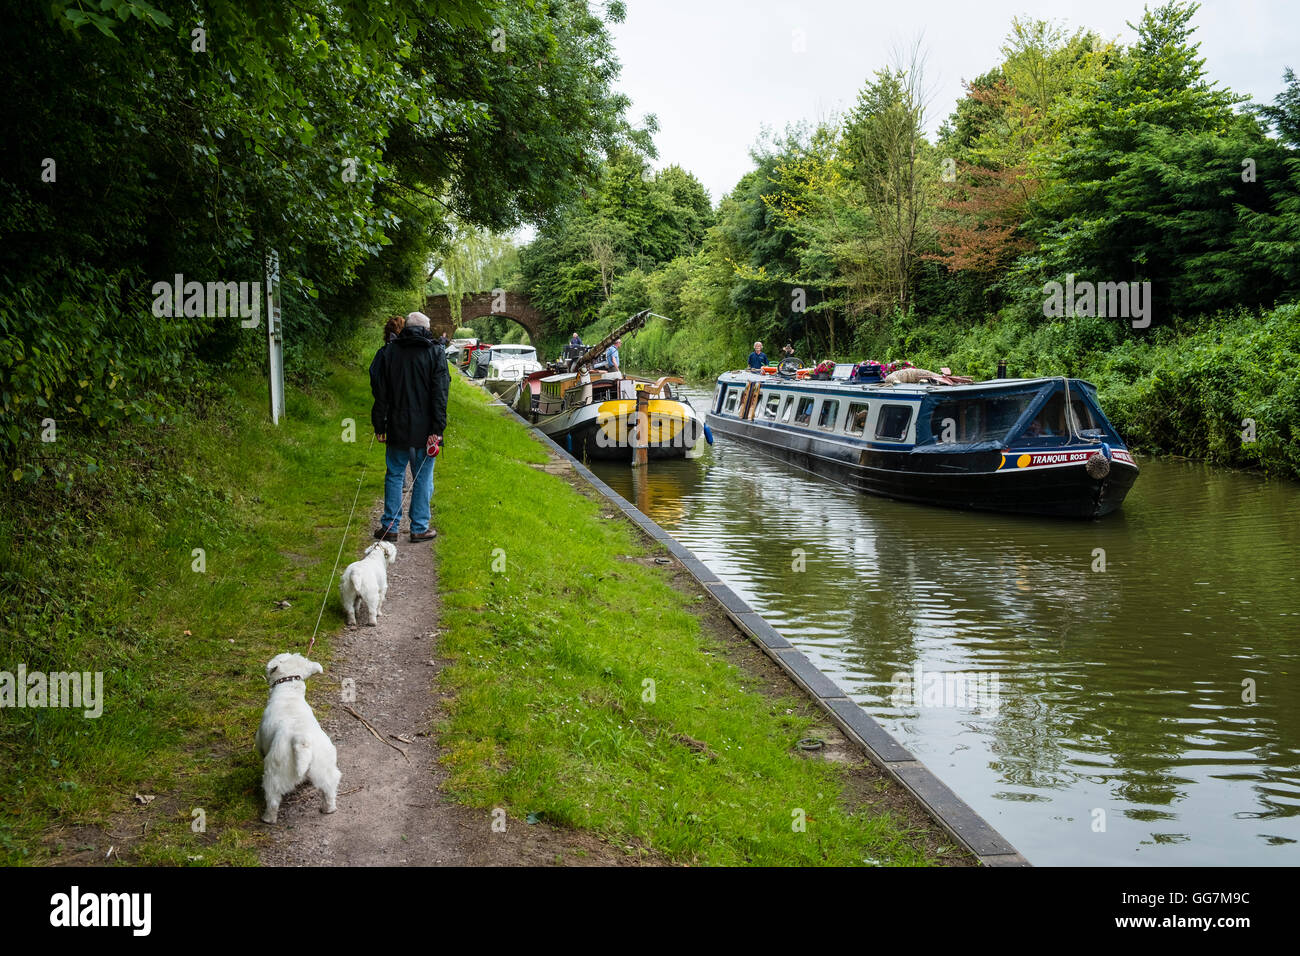 Couple walking dogs on towpath of Kennet and Avon Canal in Wiltshire England, United Kingdom - Stock Image